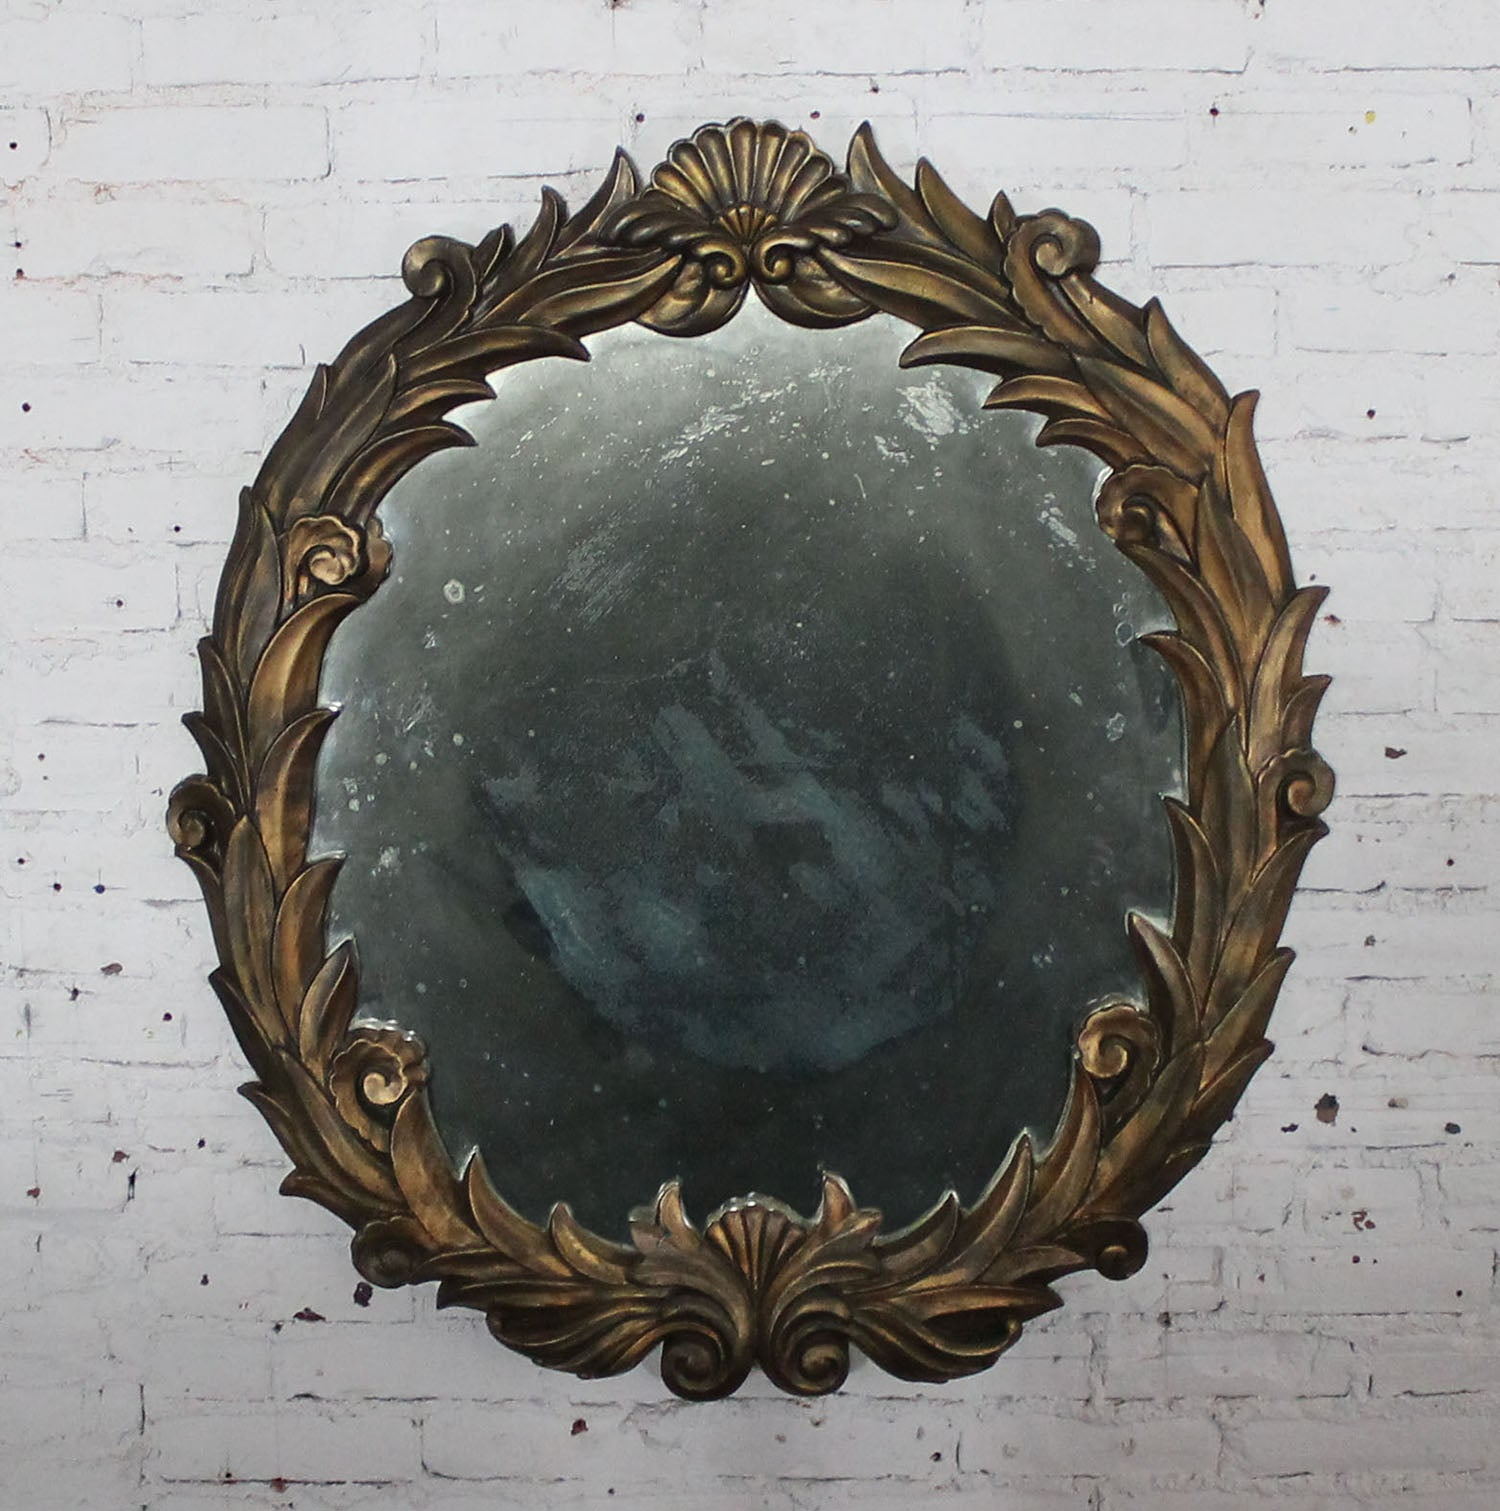 Mirror Inc Topeka Ks Large Antique Foliate Round Plaster Mirror In The Style Of Serge Roche